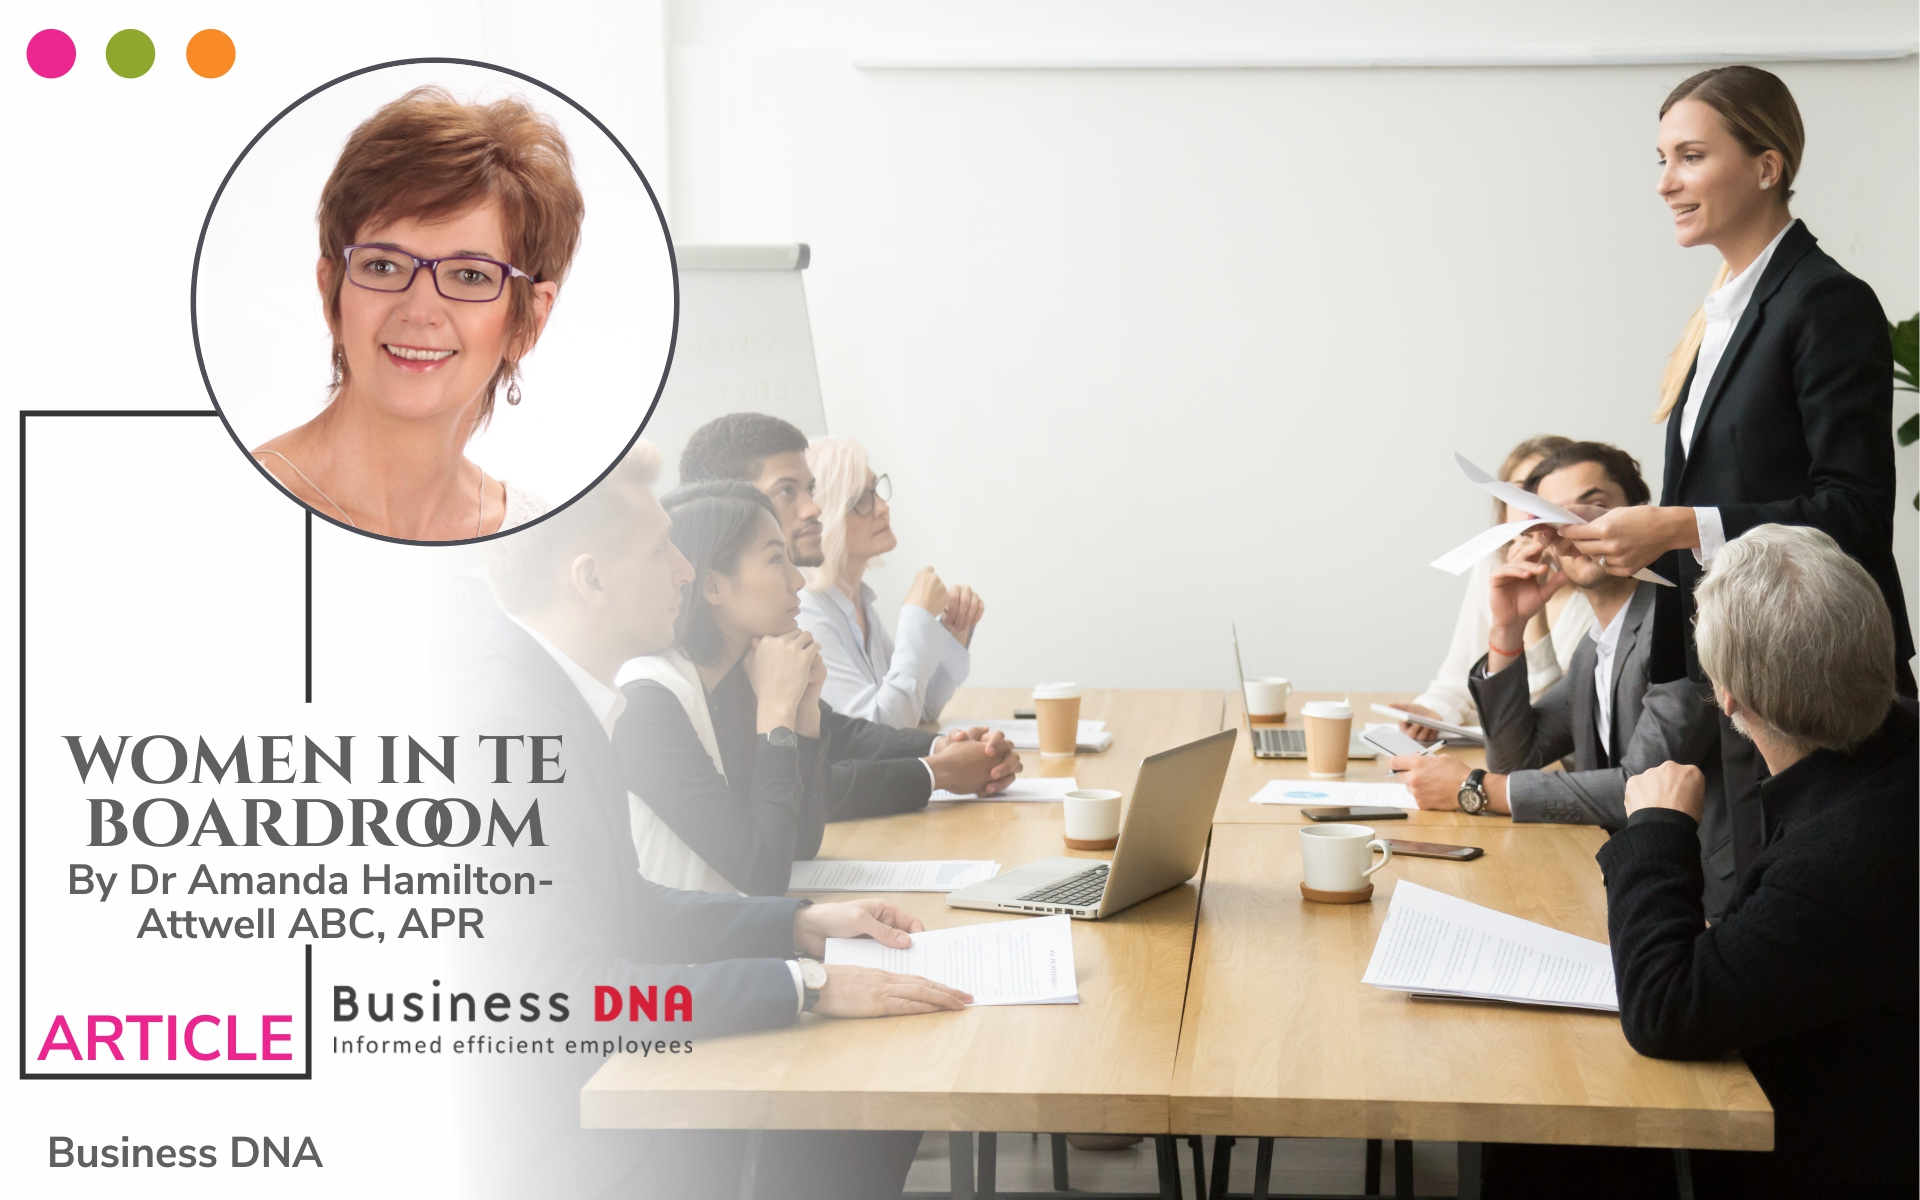 Article for Women in the boardroom